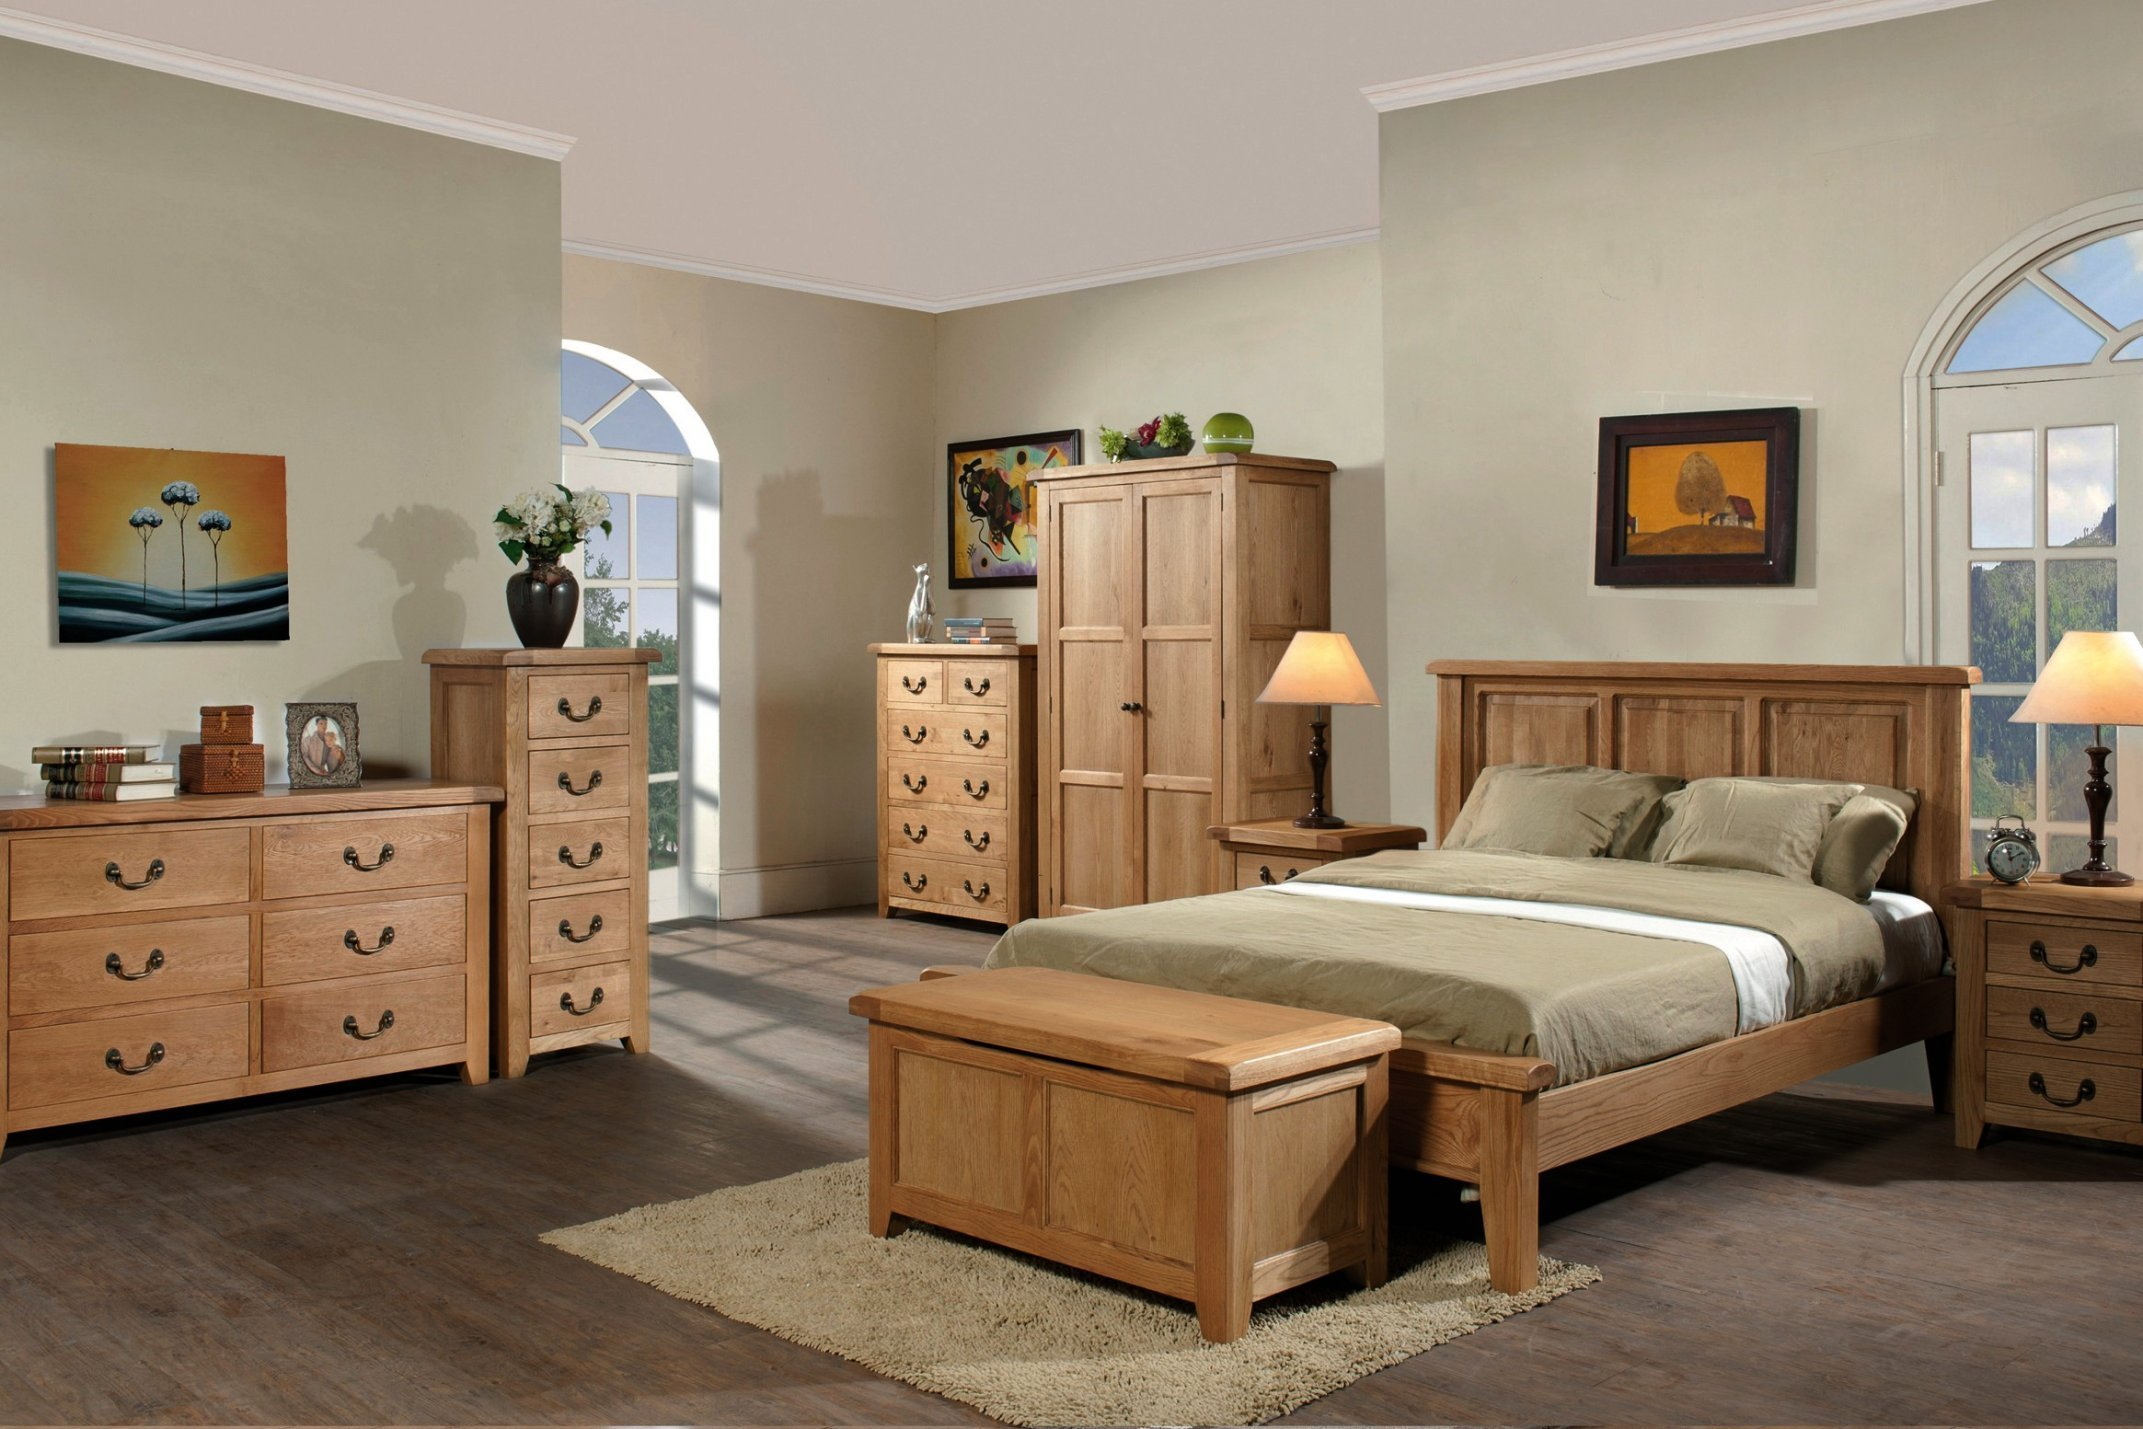 Best Superb Bedroom Furniture Stockport 1 Pear Mill Furniture With Pictures